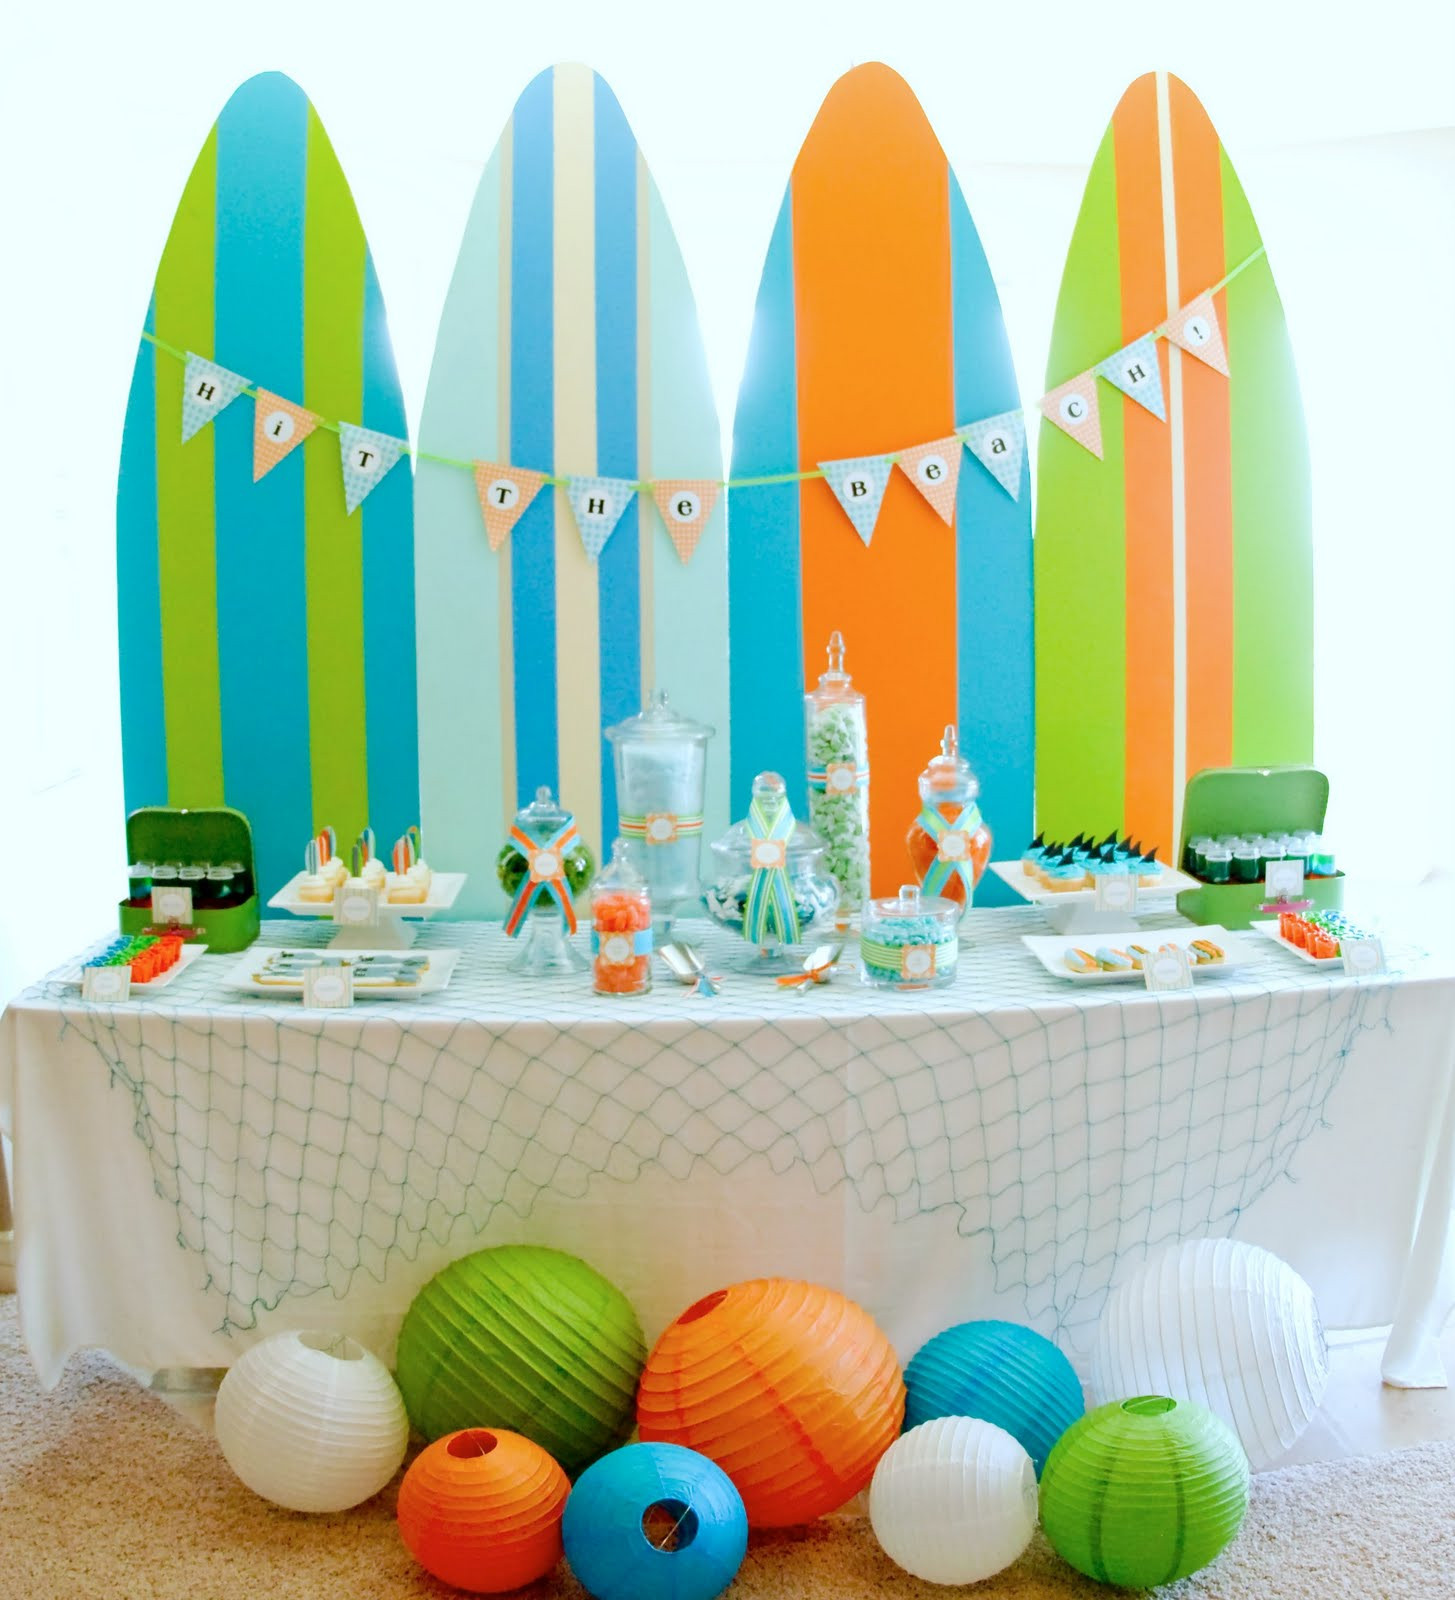 Ideas For A Beach Theme Party  Kara s Party Ideas Surf s Up Summer Pool Party